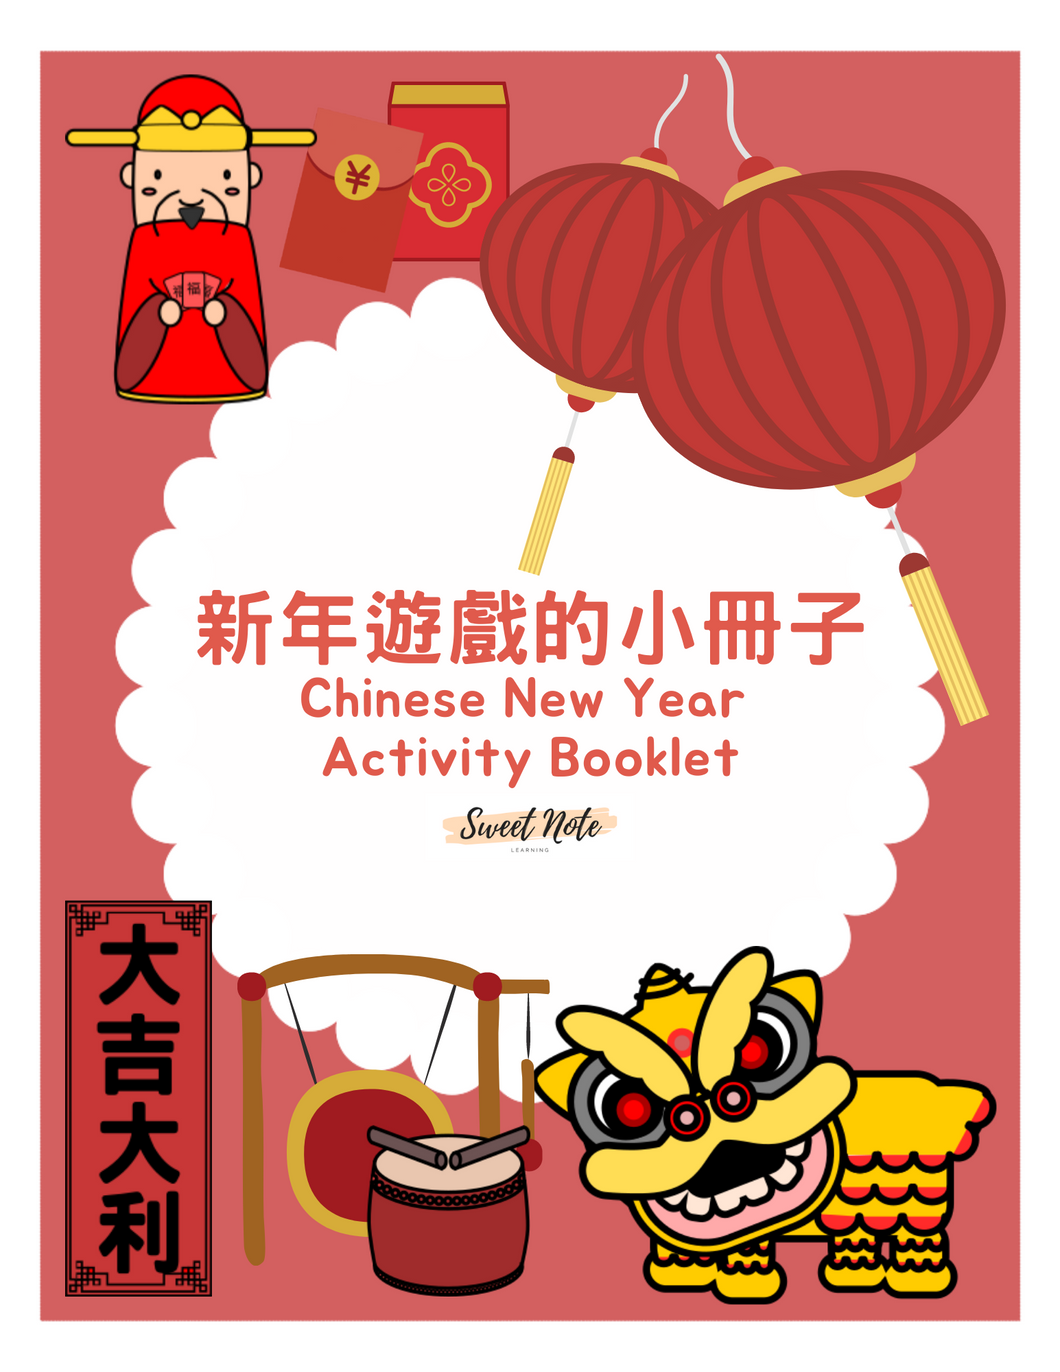 Chinese New Year Activity Booklet (Digital) • 新年遊戲的小冊子